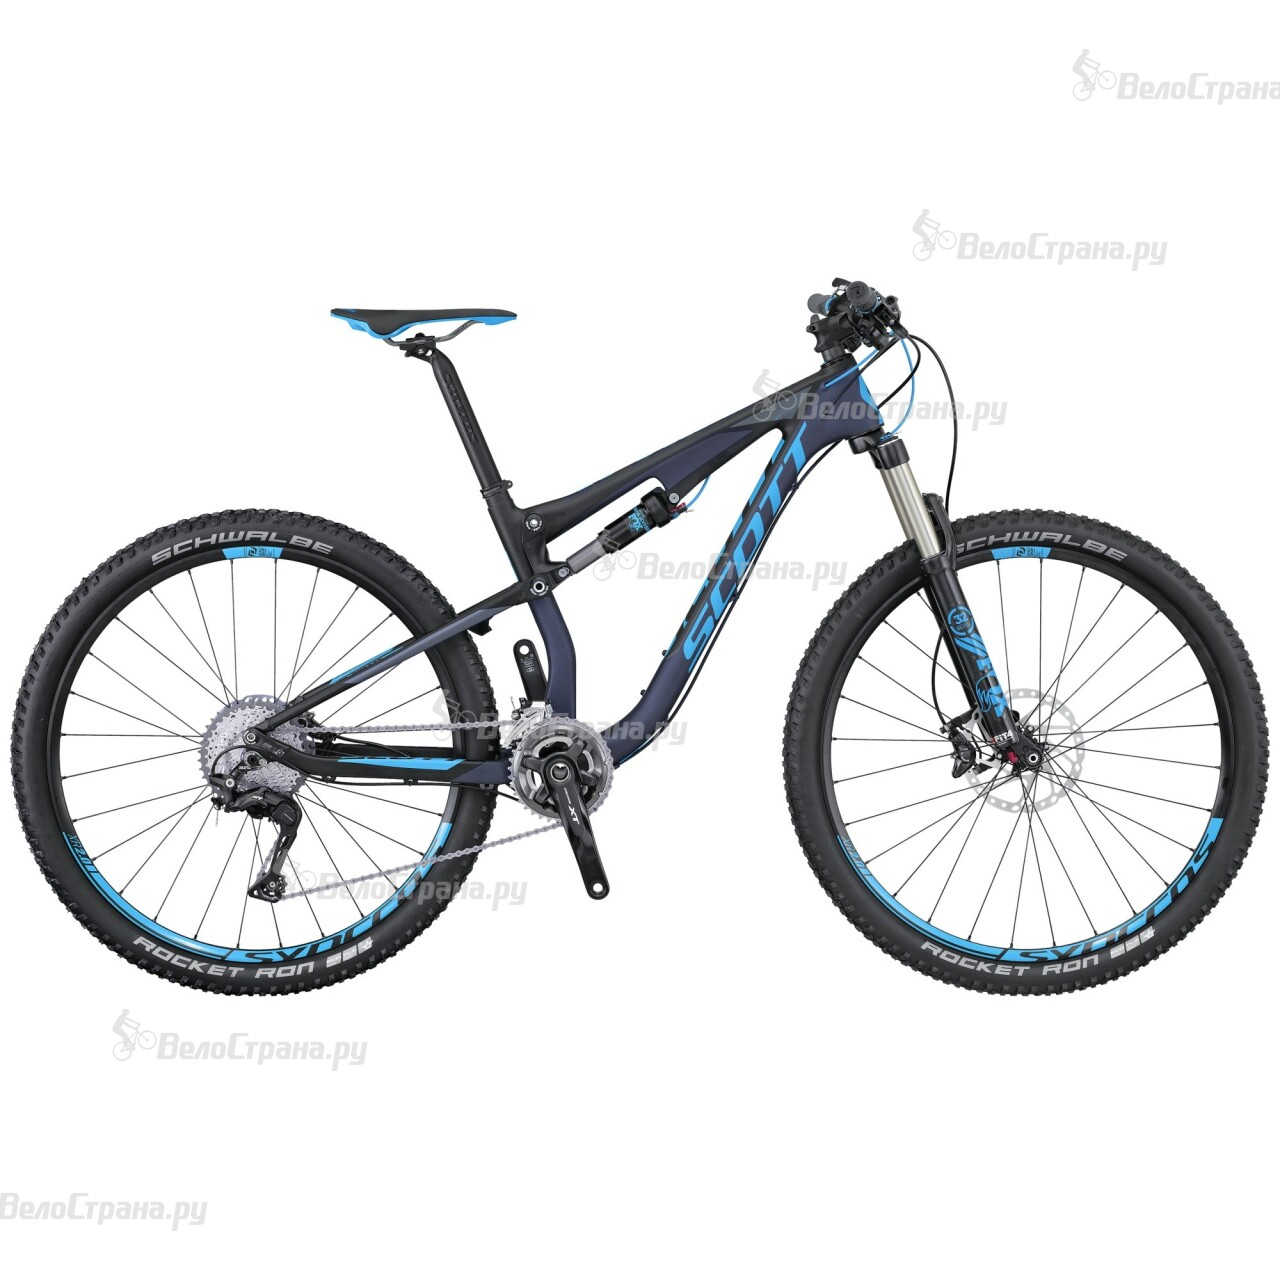 Велосипед Scott Contessa Spark 700 RC (2016) scott contessa genius 700 2016